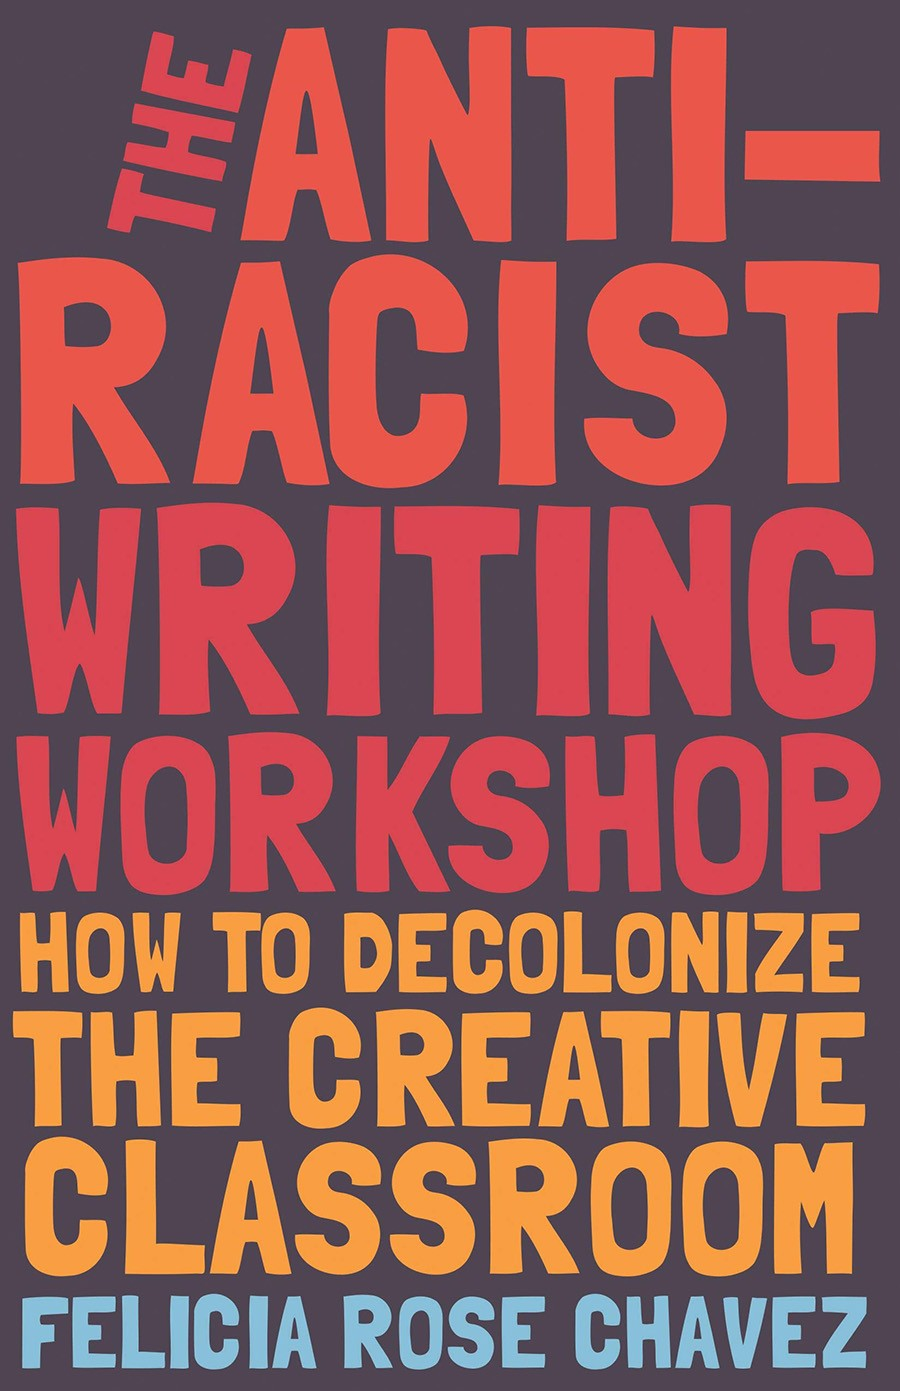 anti-racist_writing_workshop_web.jpg